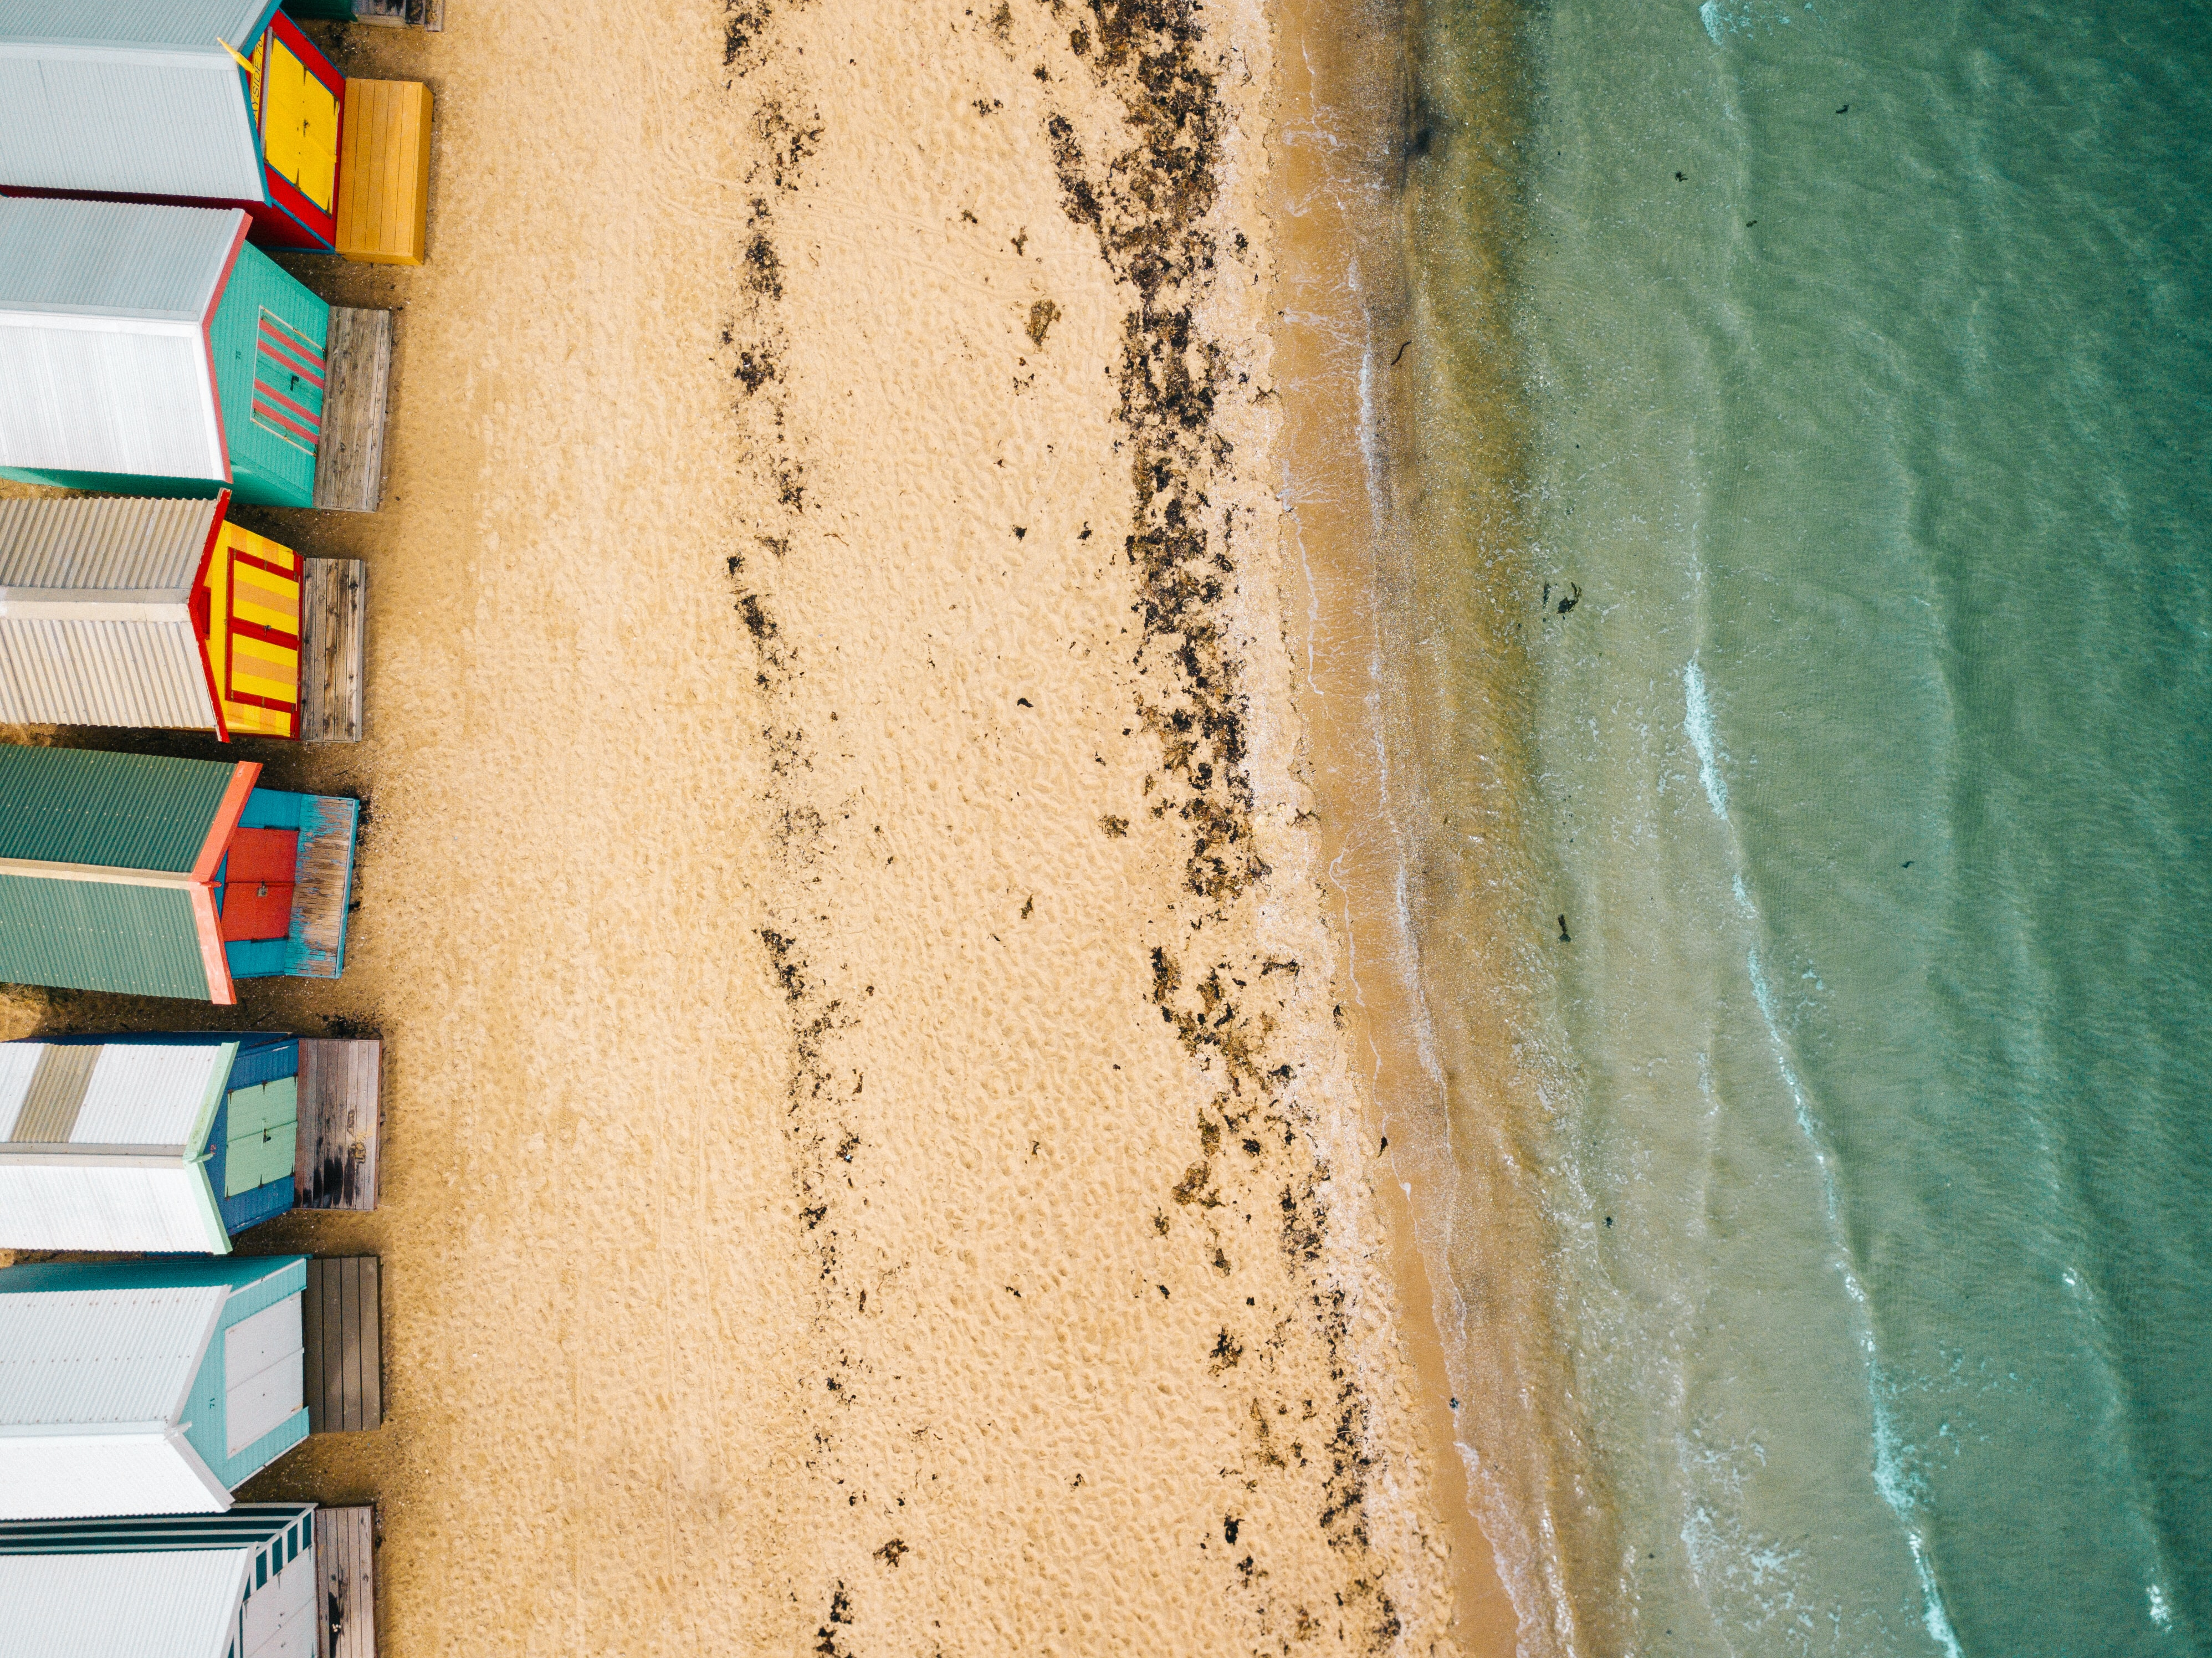 aerial photography of beach at daytime